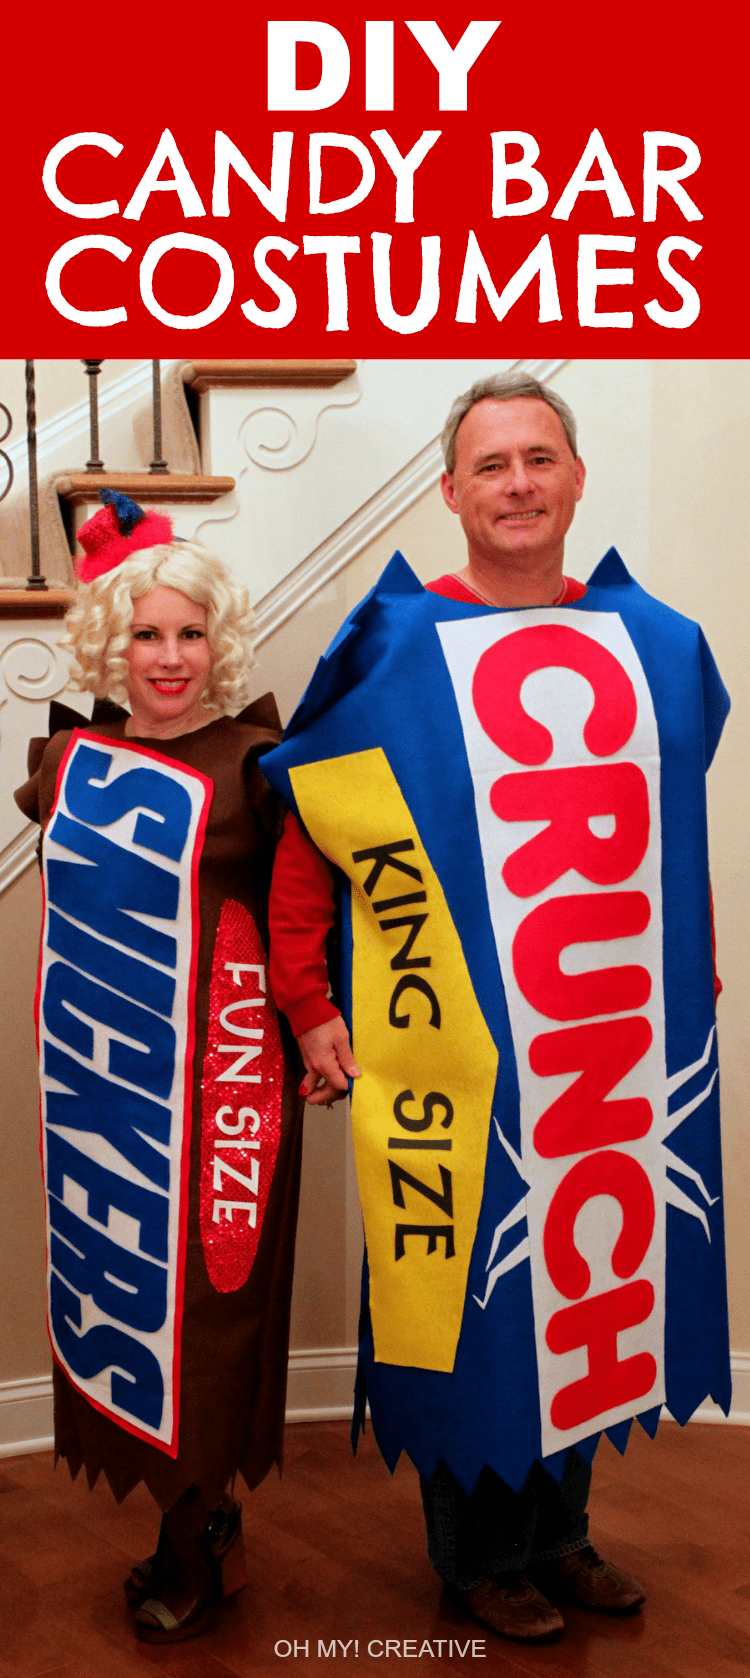 DIY Candy Bar Halloween Costume and Top Hat made out of felt. A fun Halloween costume for adults or kids! Includes a free downloadable letter templet! | OHMY-CREATIVE.COM